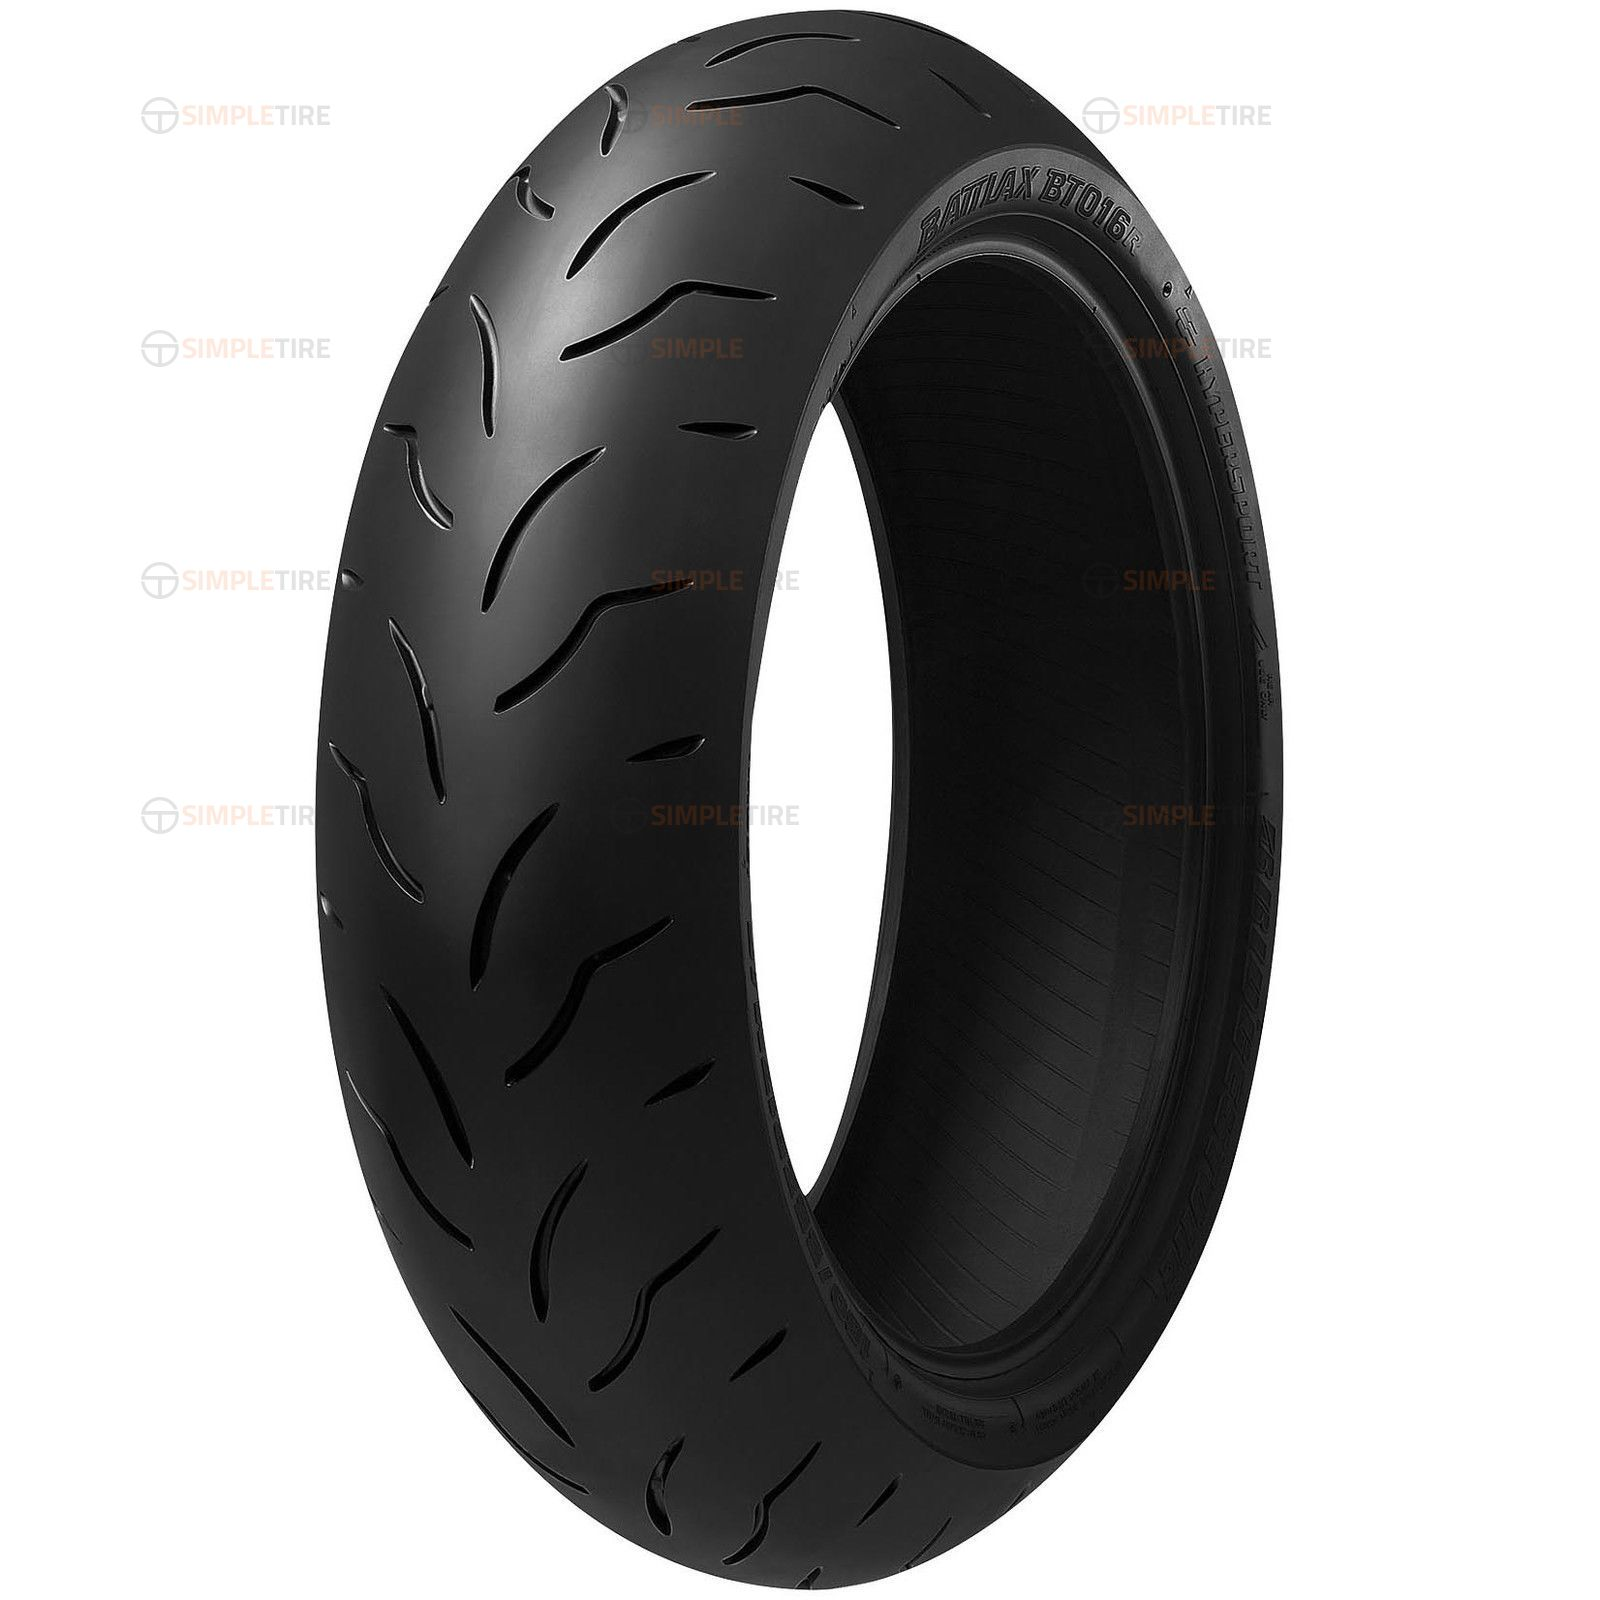 003061 180/55R17 Battlax BT-016 (Rear) Bridgestone